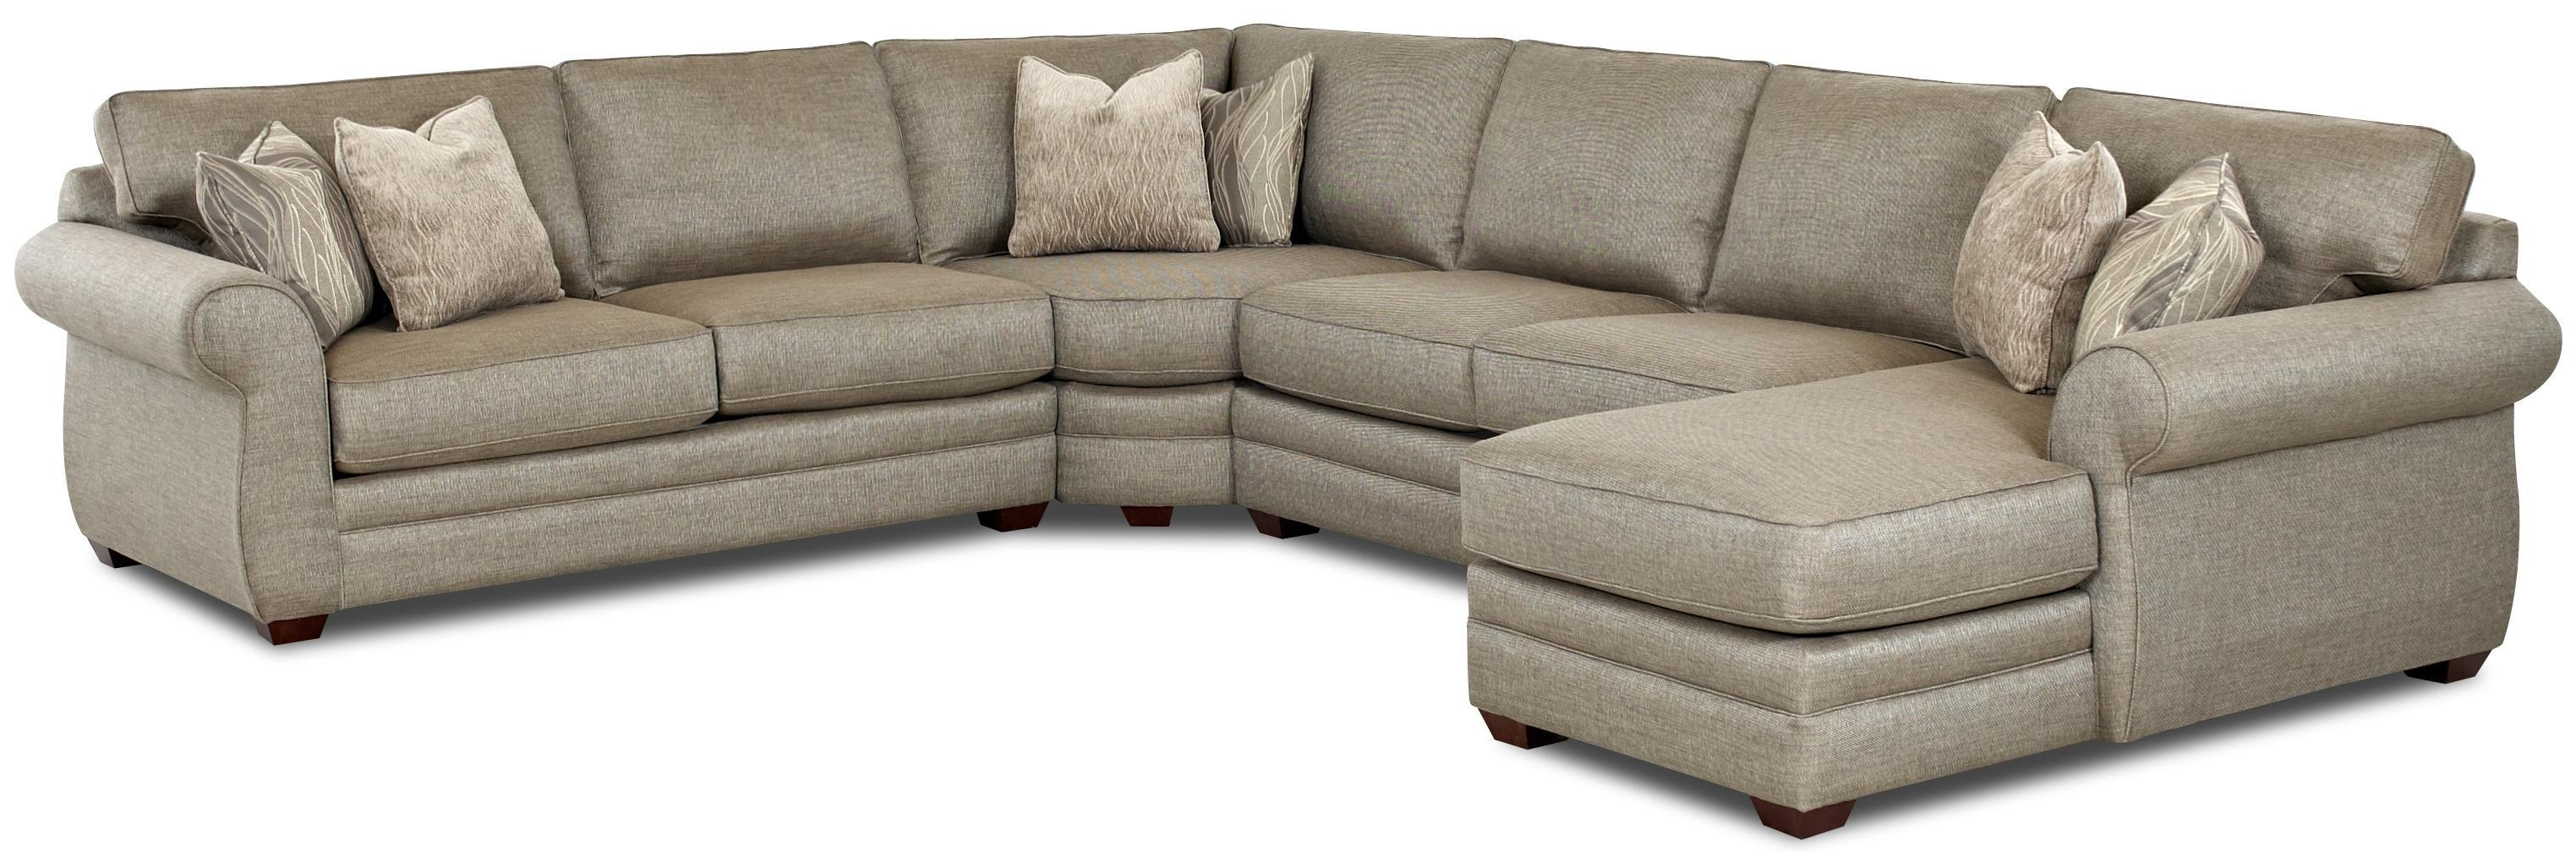 Astonishing Sleeper Sectional Sofas With Chaise 14 With Additional Intended For Sectional With Recliner And Sleeper (Image 2 of 20)